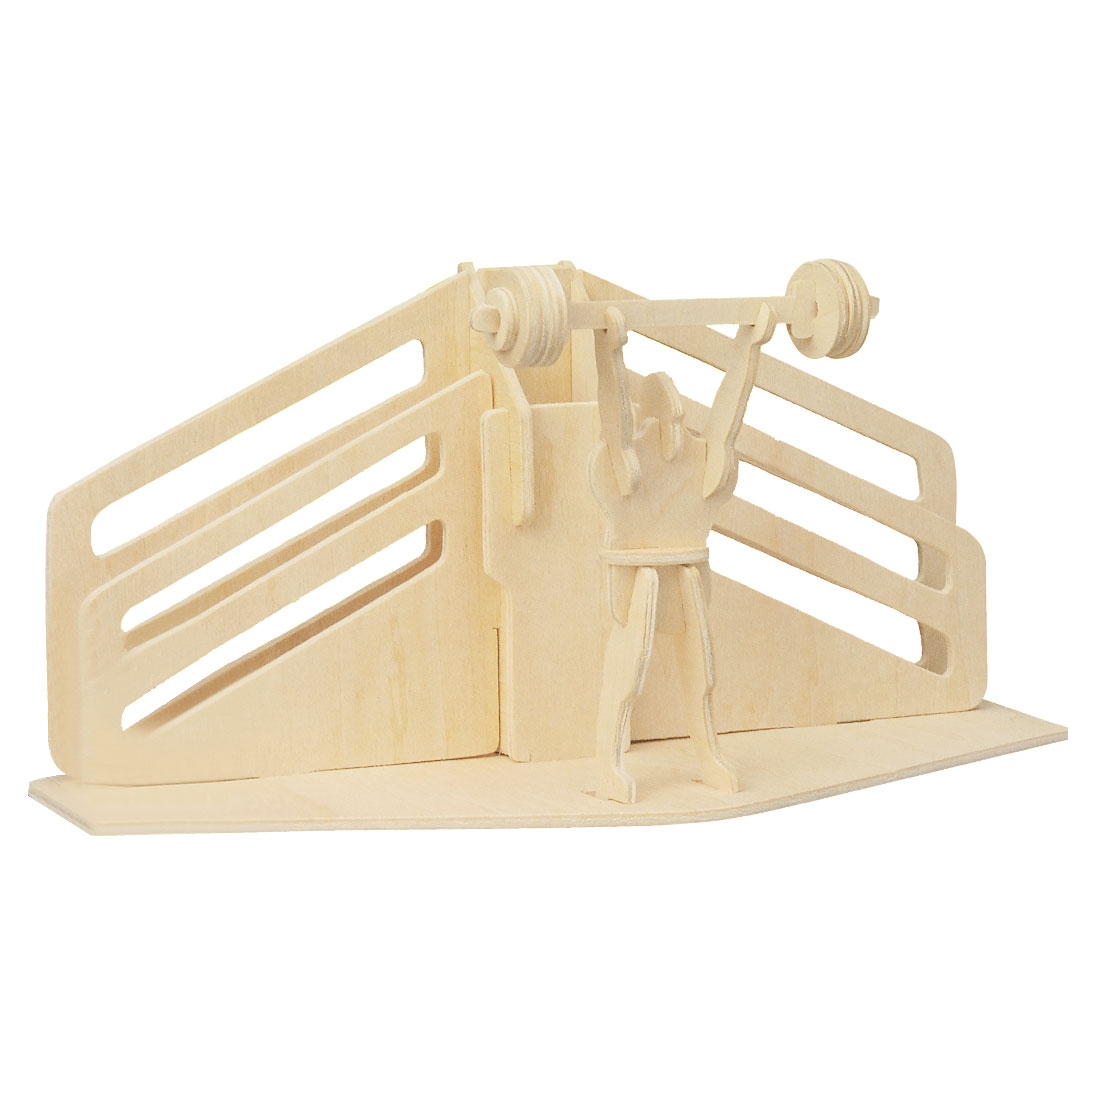 3D Wood Weight Lifting Model Woodcraft Construction Kit Puzzle Toy